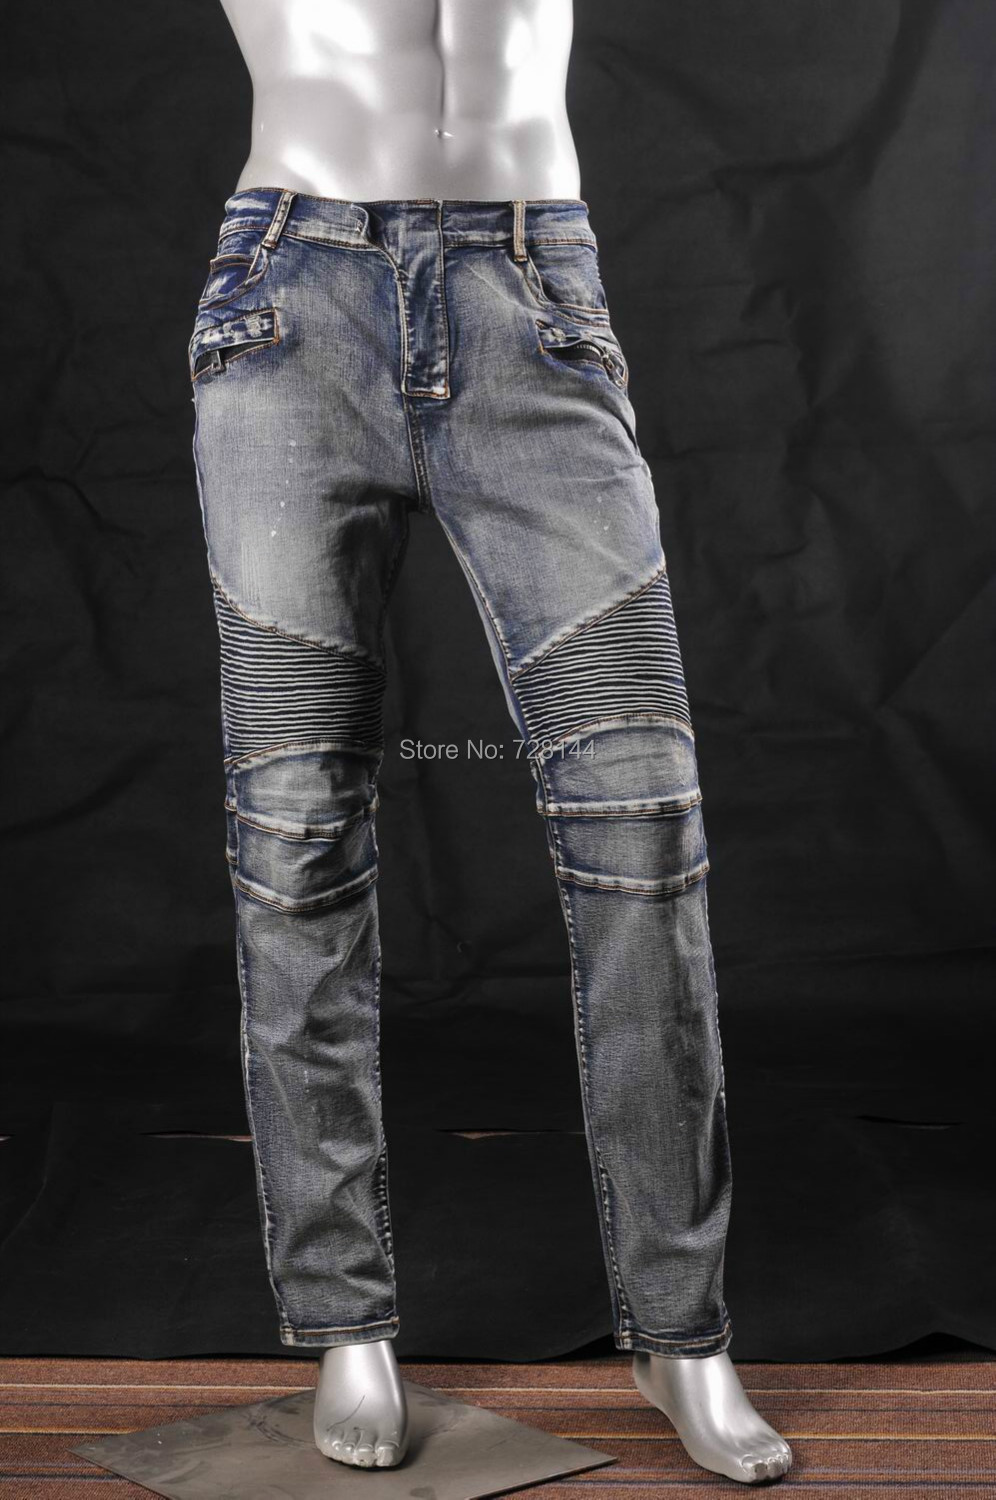 jean brand jeans Picture - More Detailed Picture about free ...